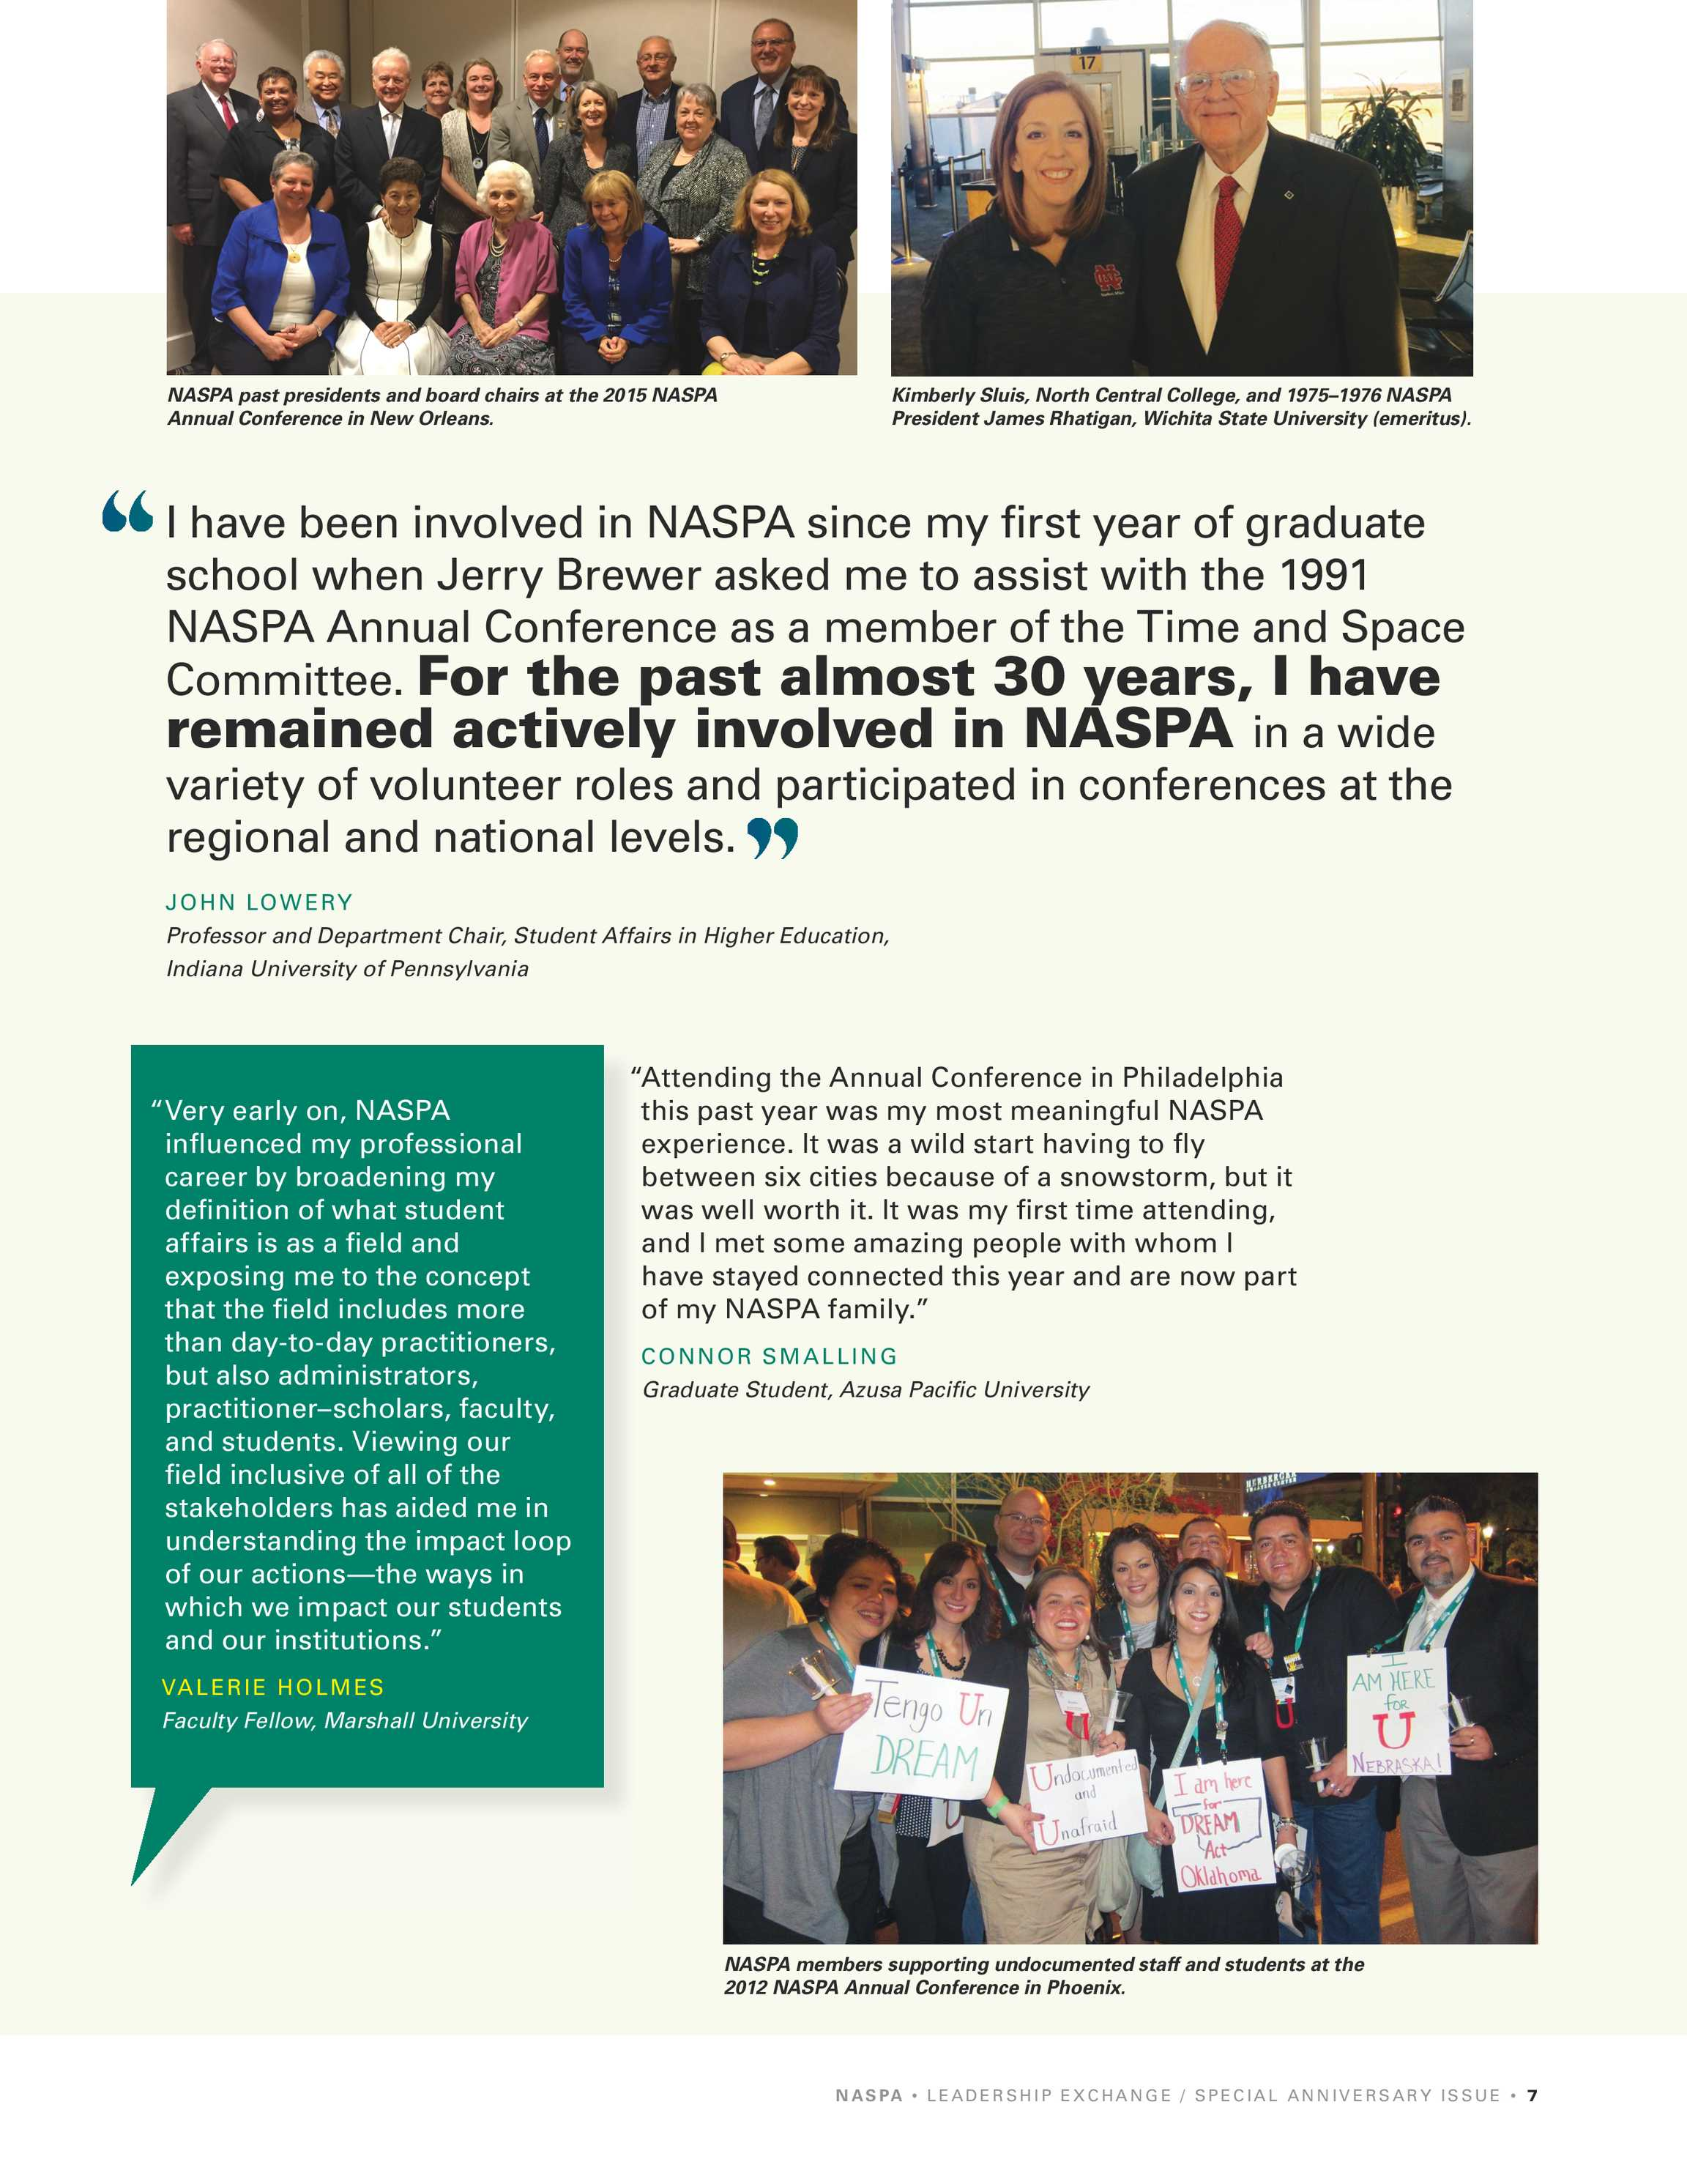 Leadership Exchange - 100th Anniversary 2019 - page 7